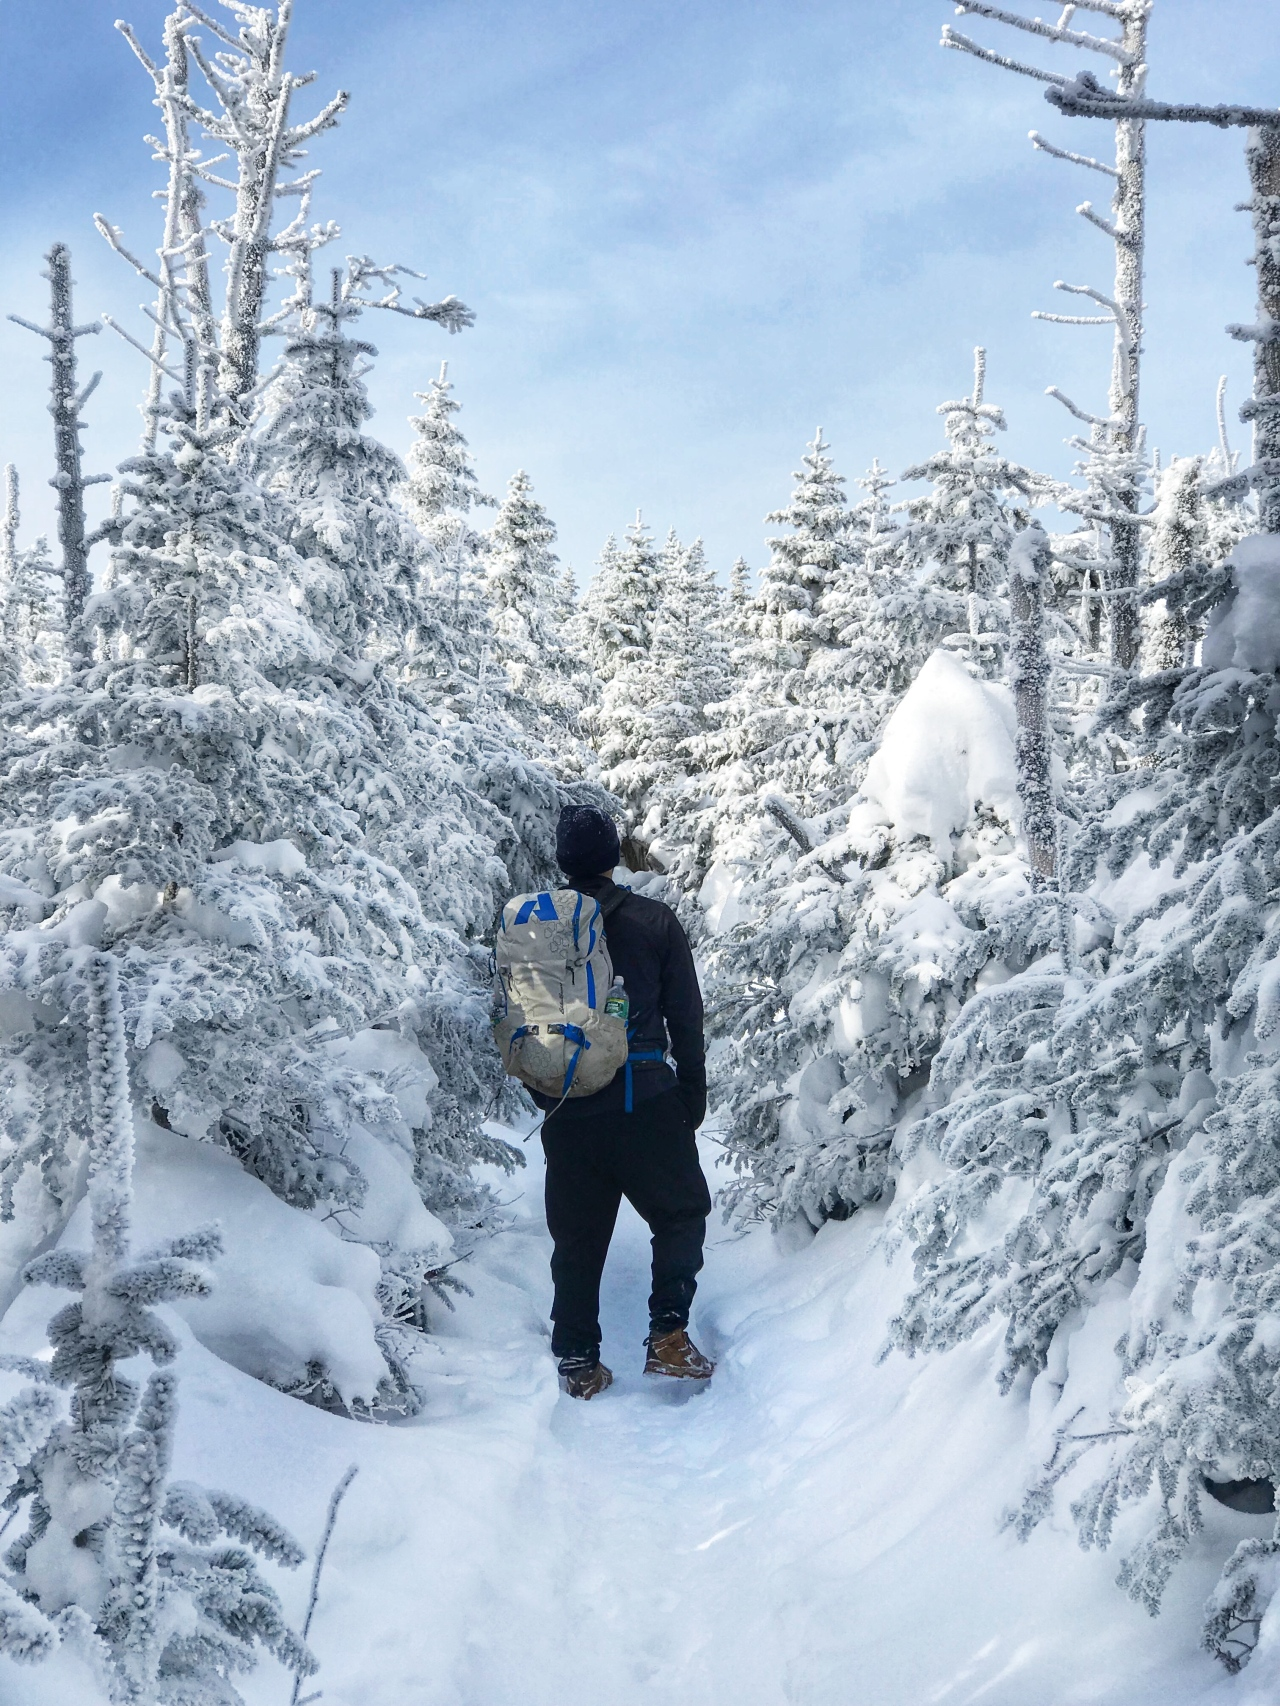 Walking in Snowy Trees on Whiteface